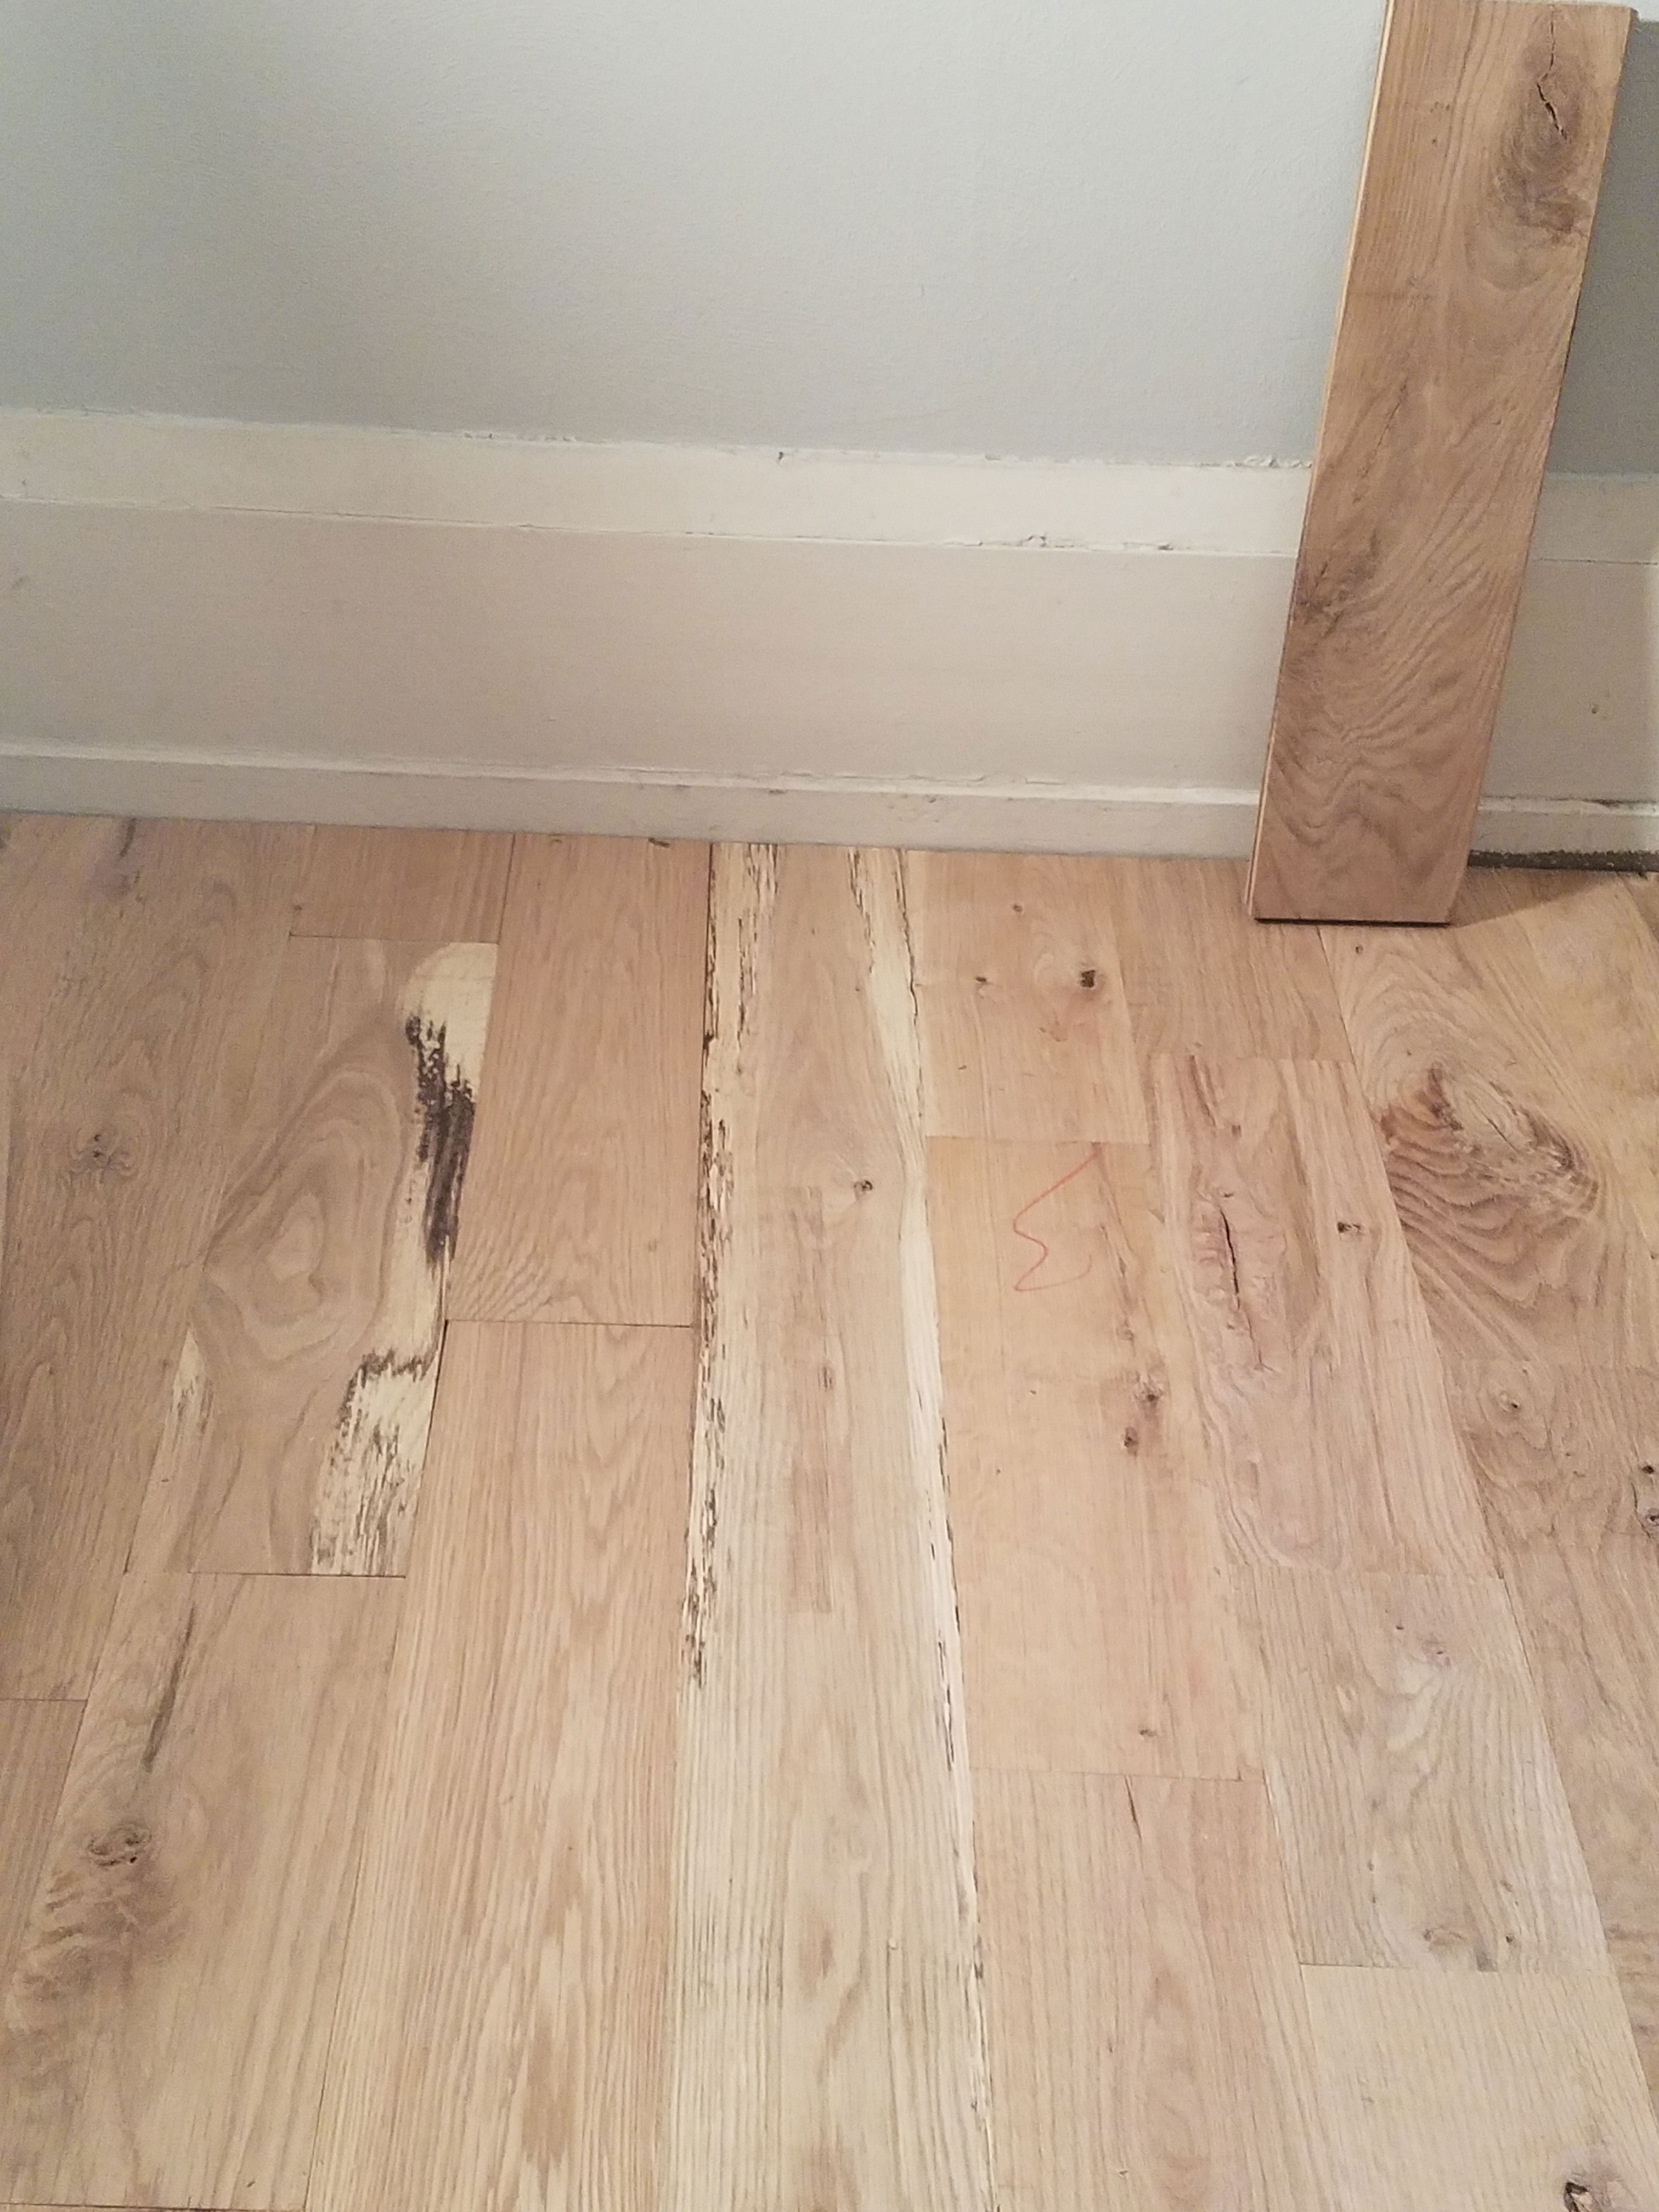 floor tour and home more white stain video flooring pin renovation upcoming hardwood the oak reveal a family floors demo weathered room of see duraseal refinished kitchen new